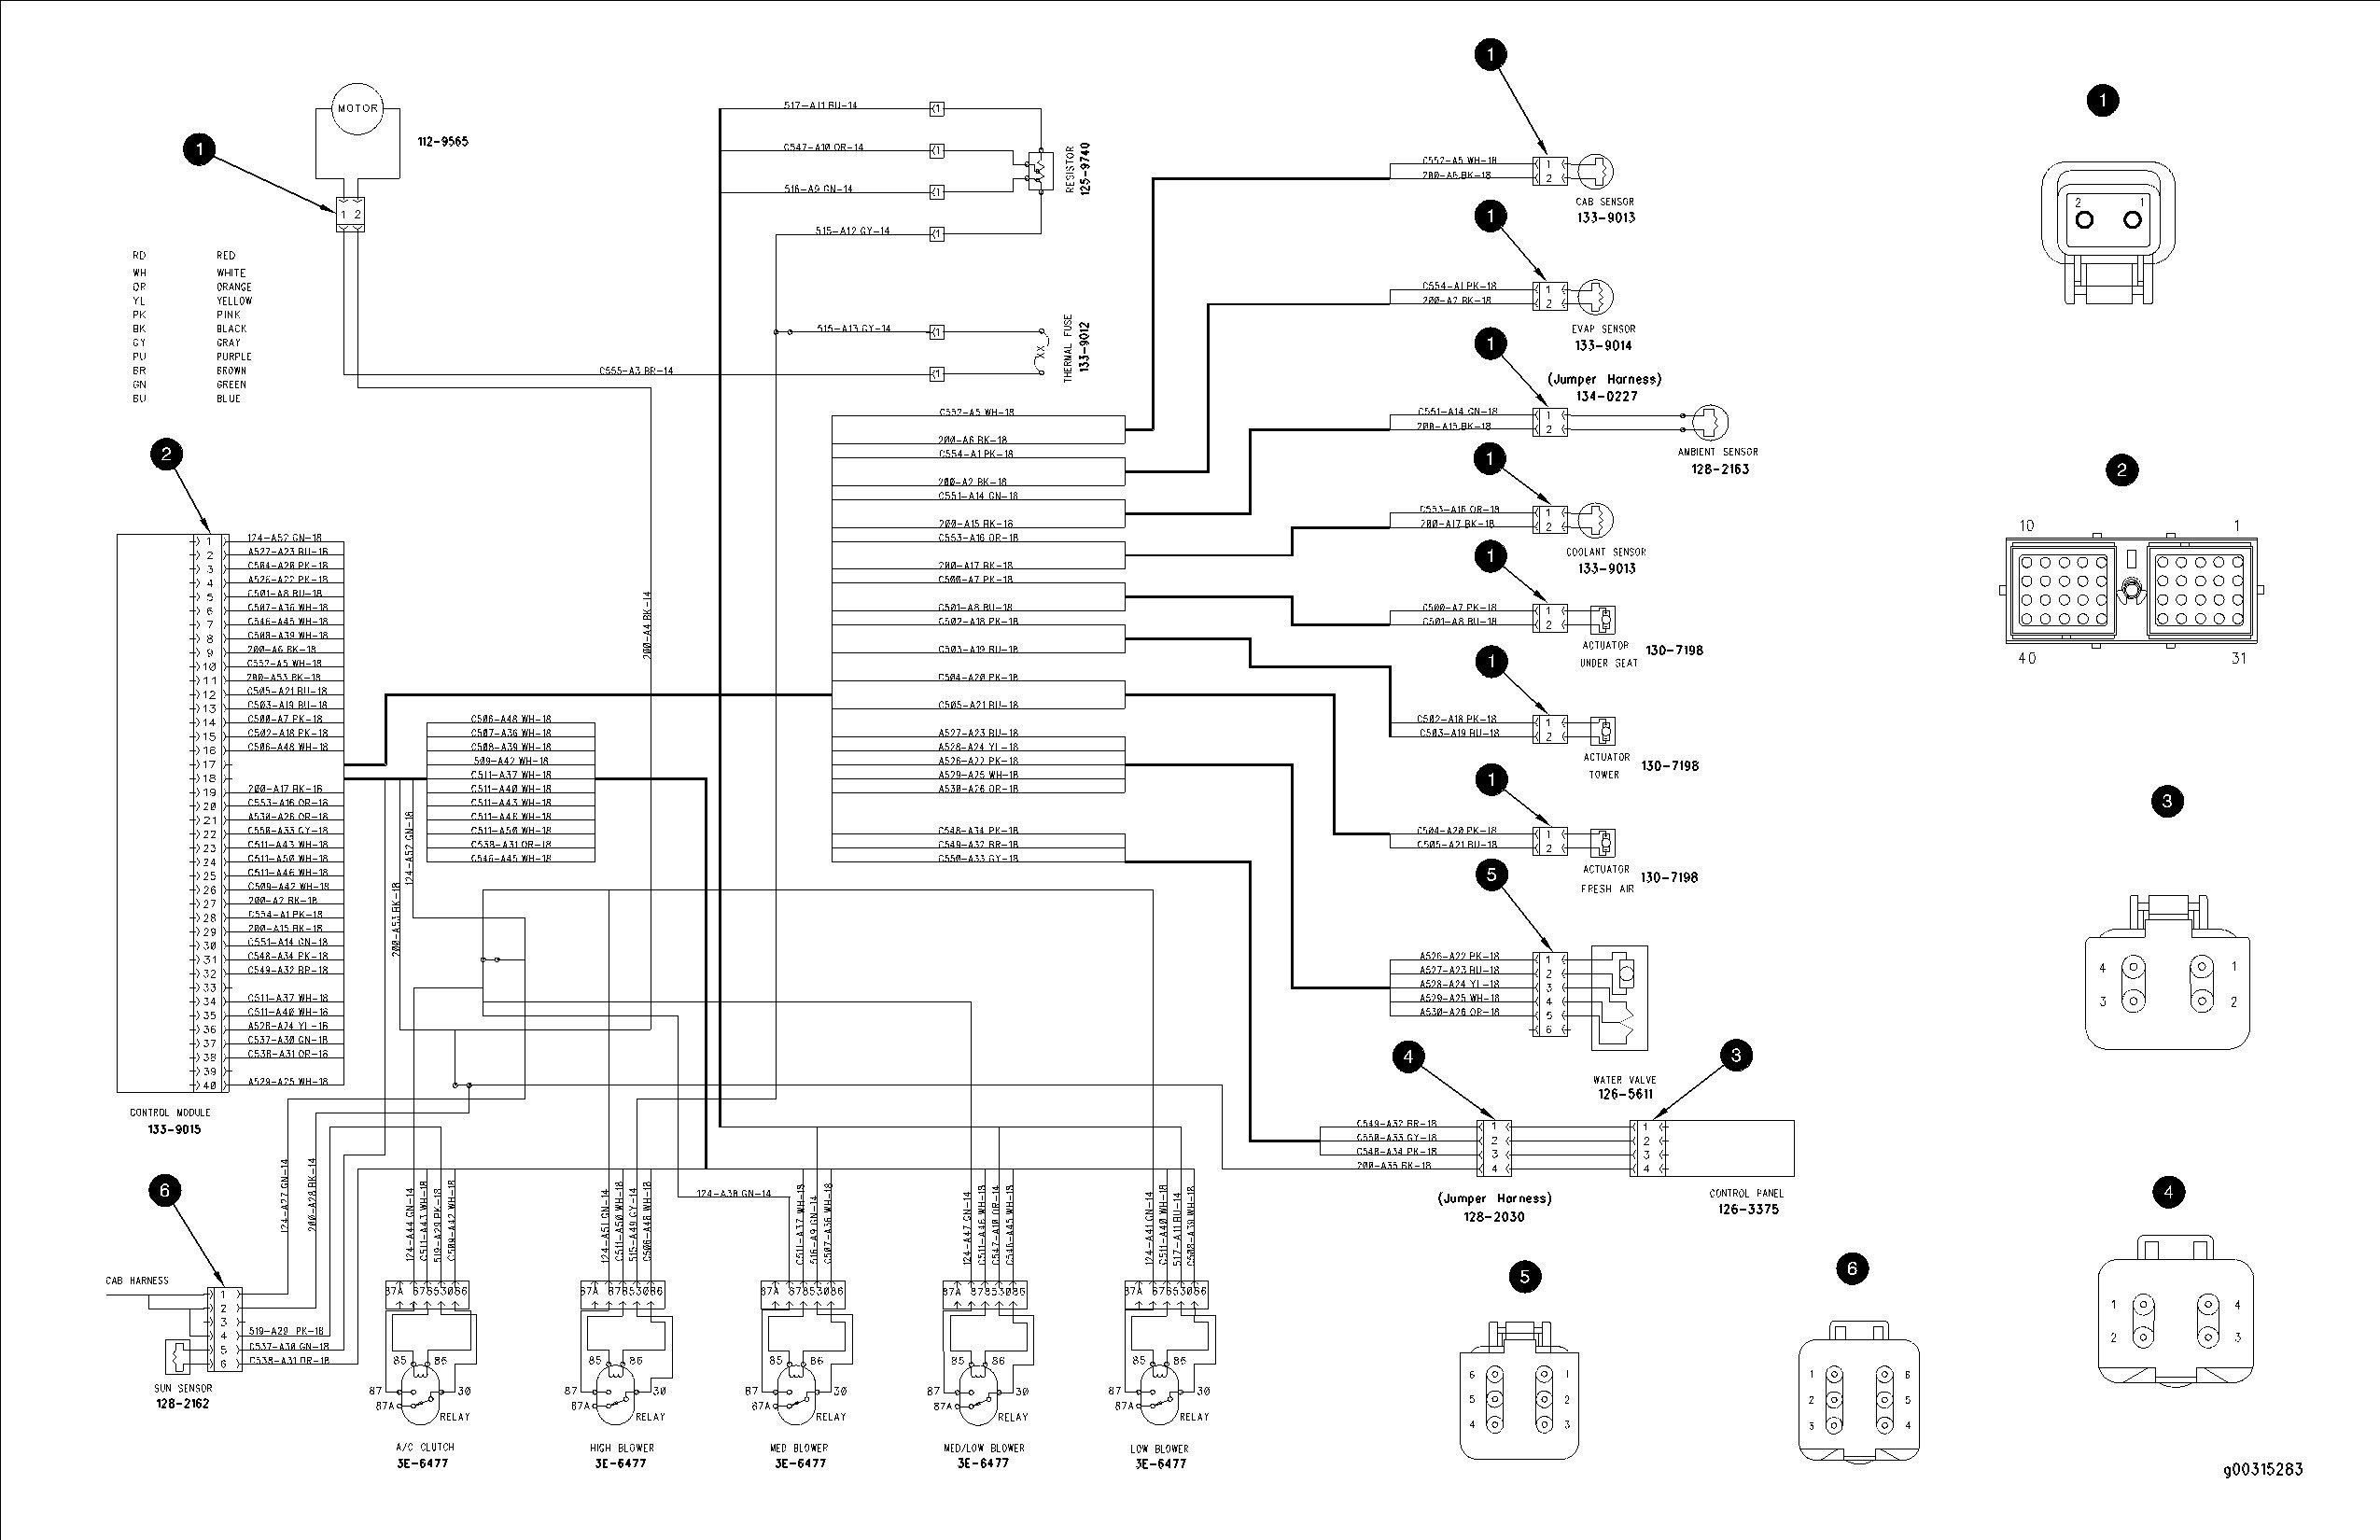 Cat 70 Pin Ecm Wiring Diagram Lovely Awesome Attracktive